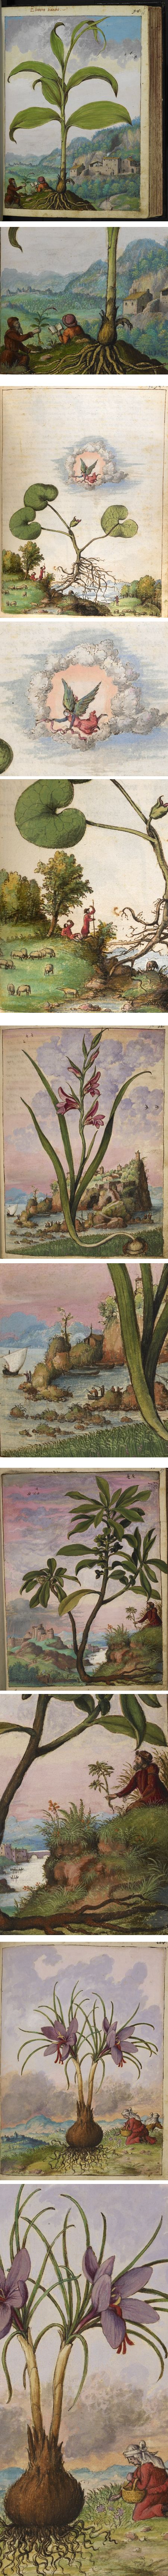 Gherardo Cibos 16th century watercolor illustrations of medicinal herbs